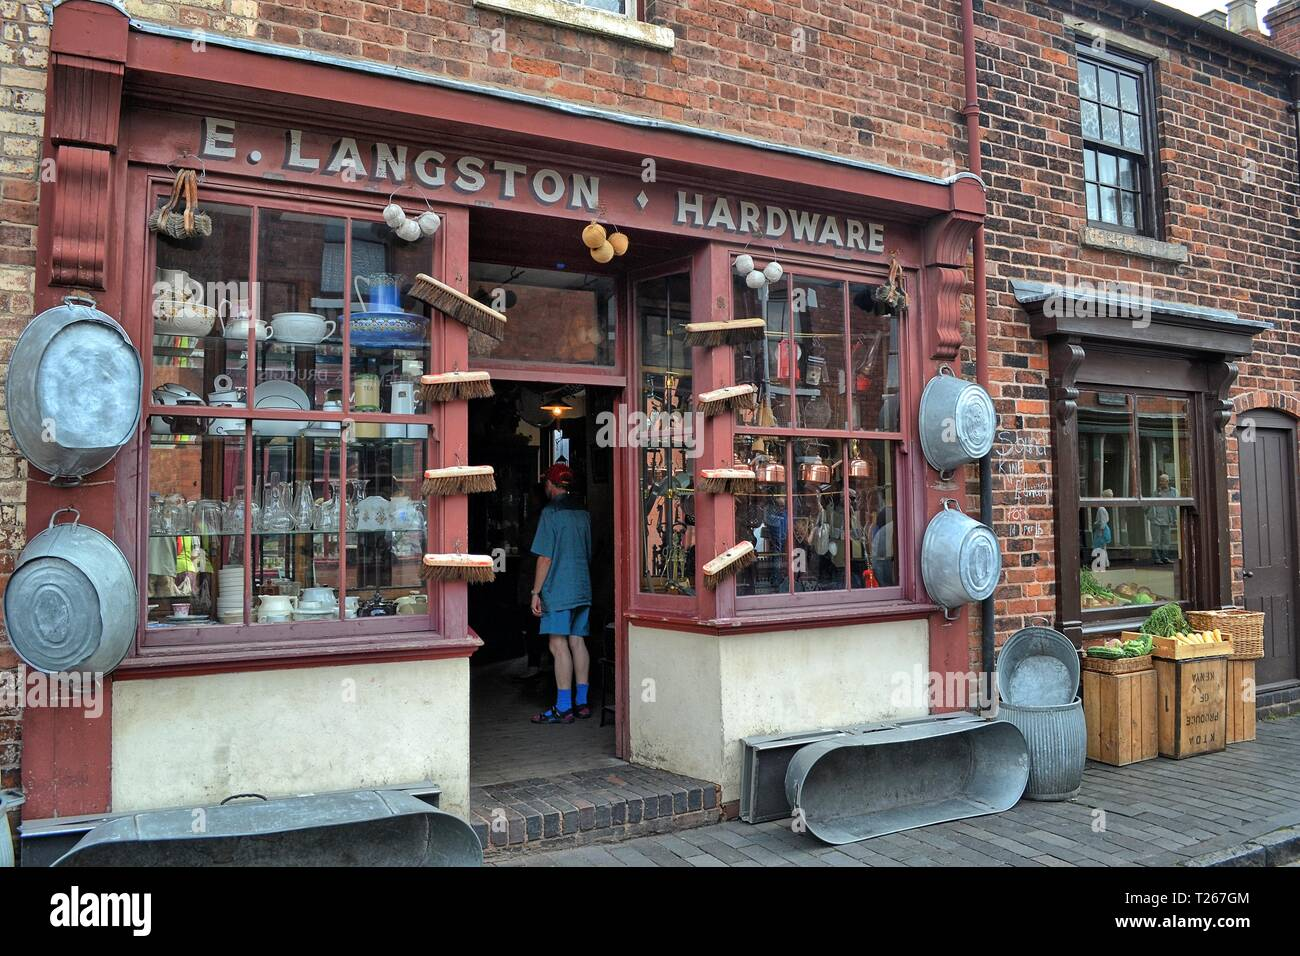 The Black Country Living Museum, an open-air museum of rebuilt historic buildings in Dudley, West Midlands, England, UK - Stock Image